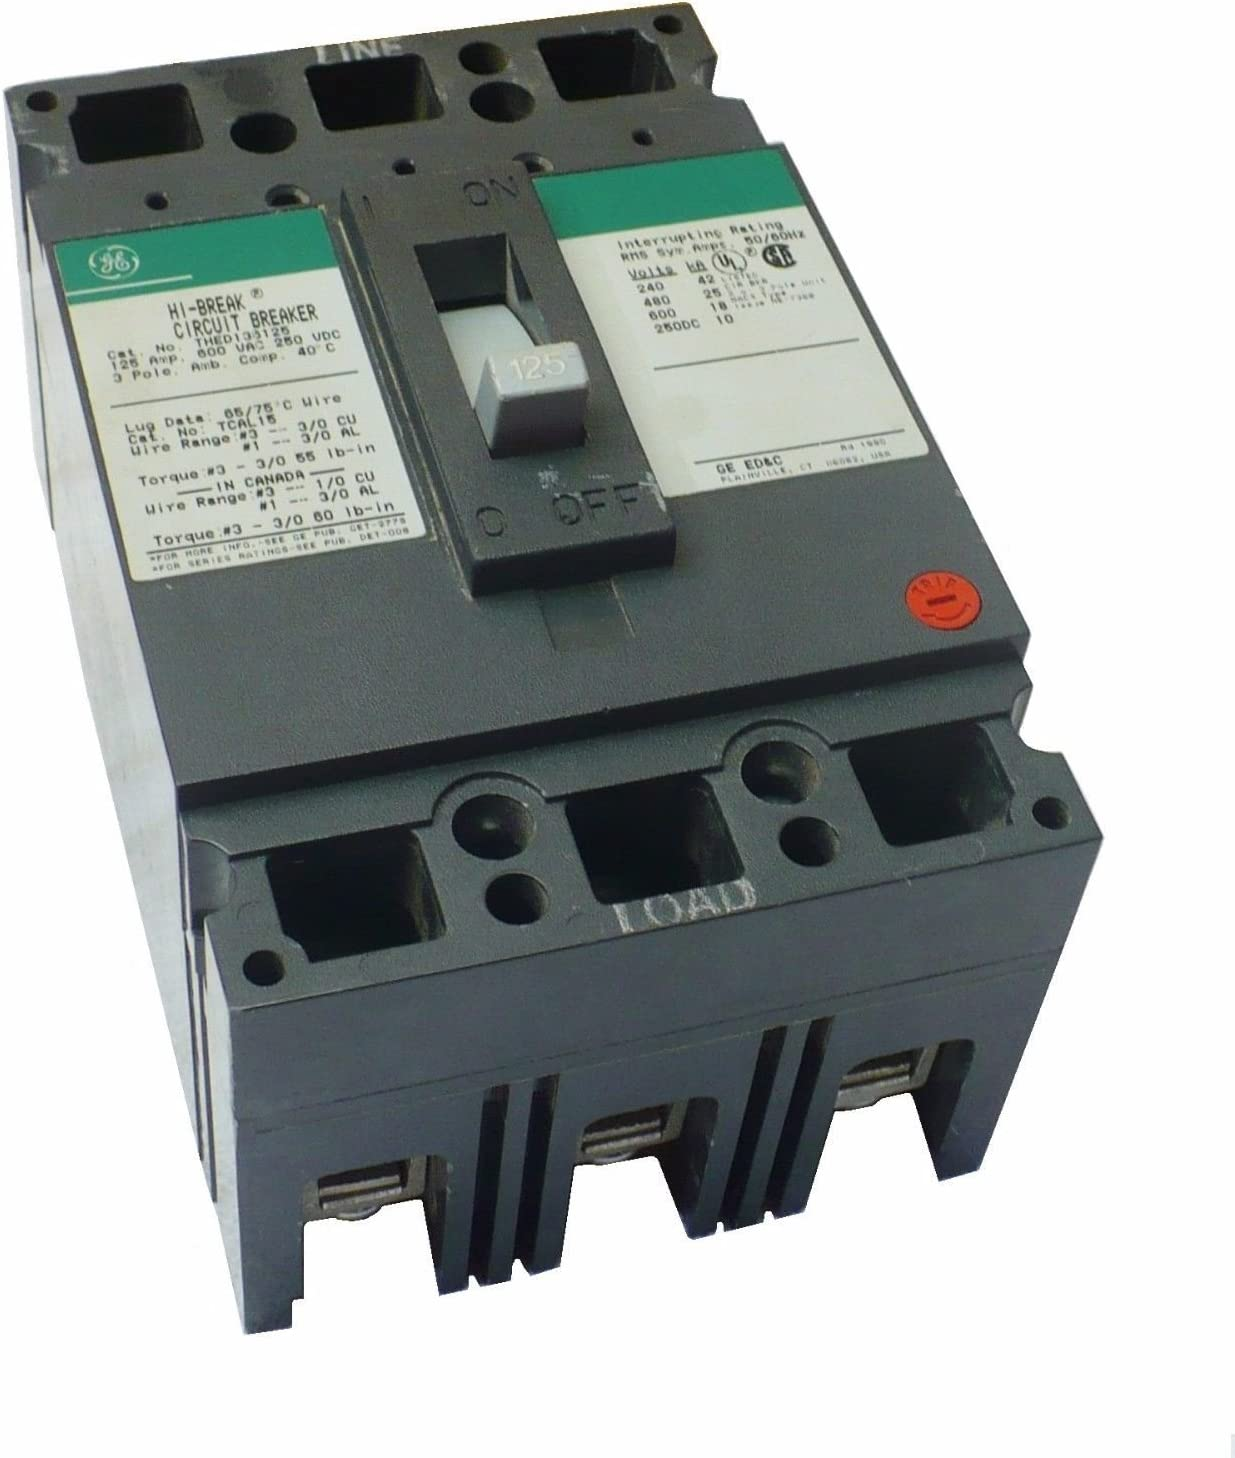 General Electric / Ge THED136125 (GE) Circuit Breakers